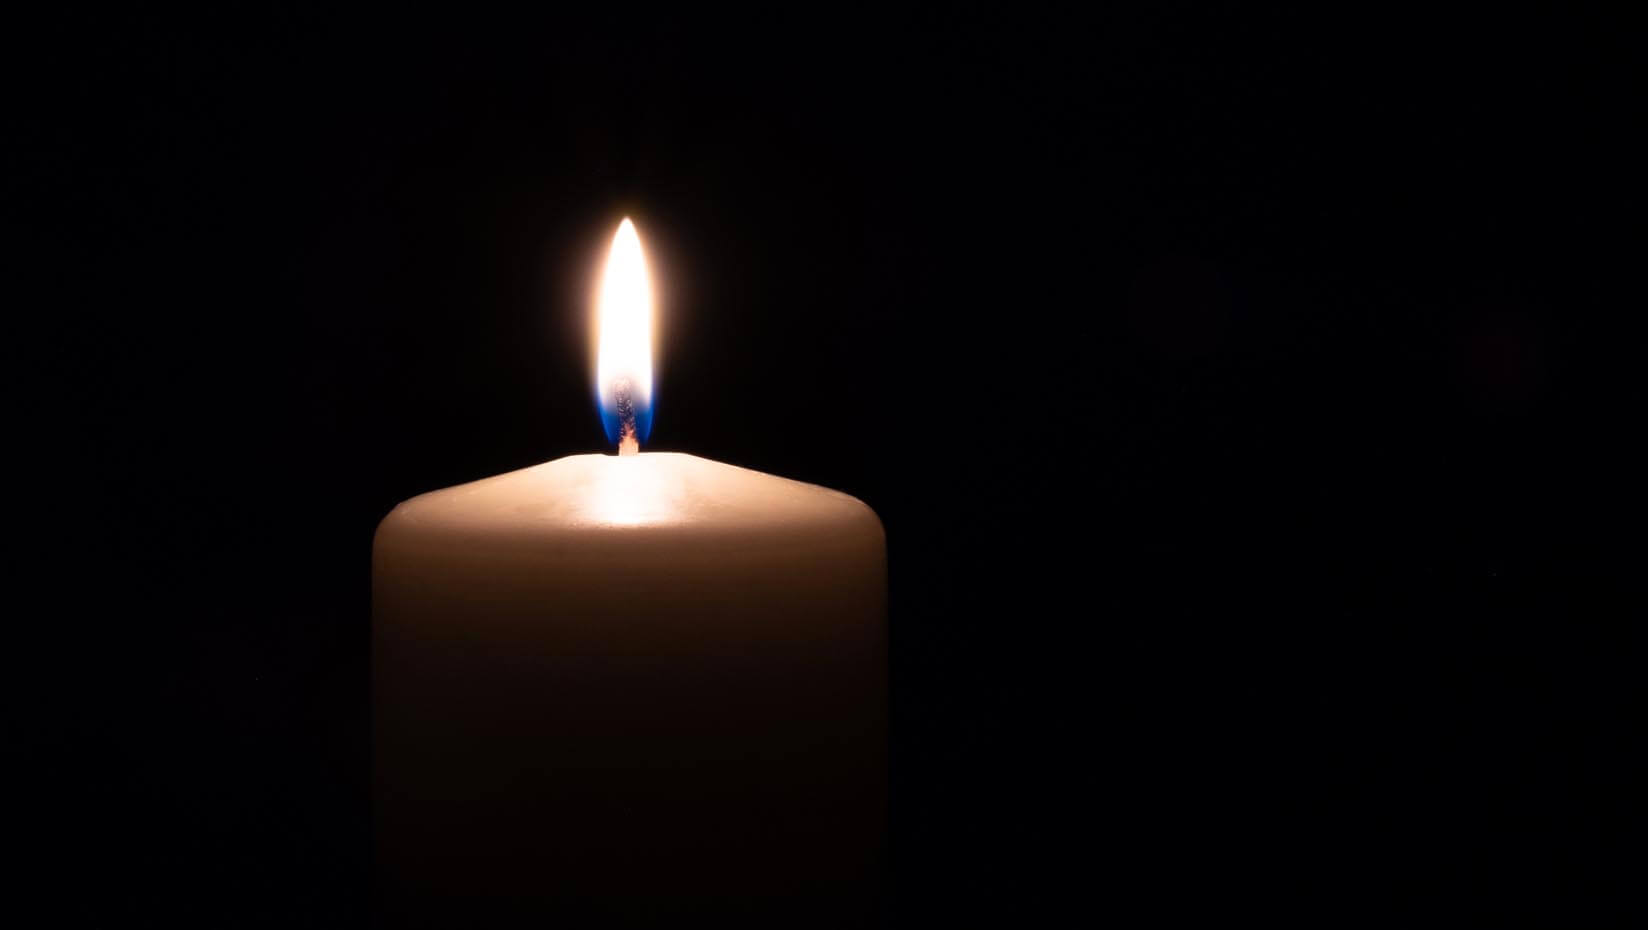 stock photo of a candle